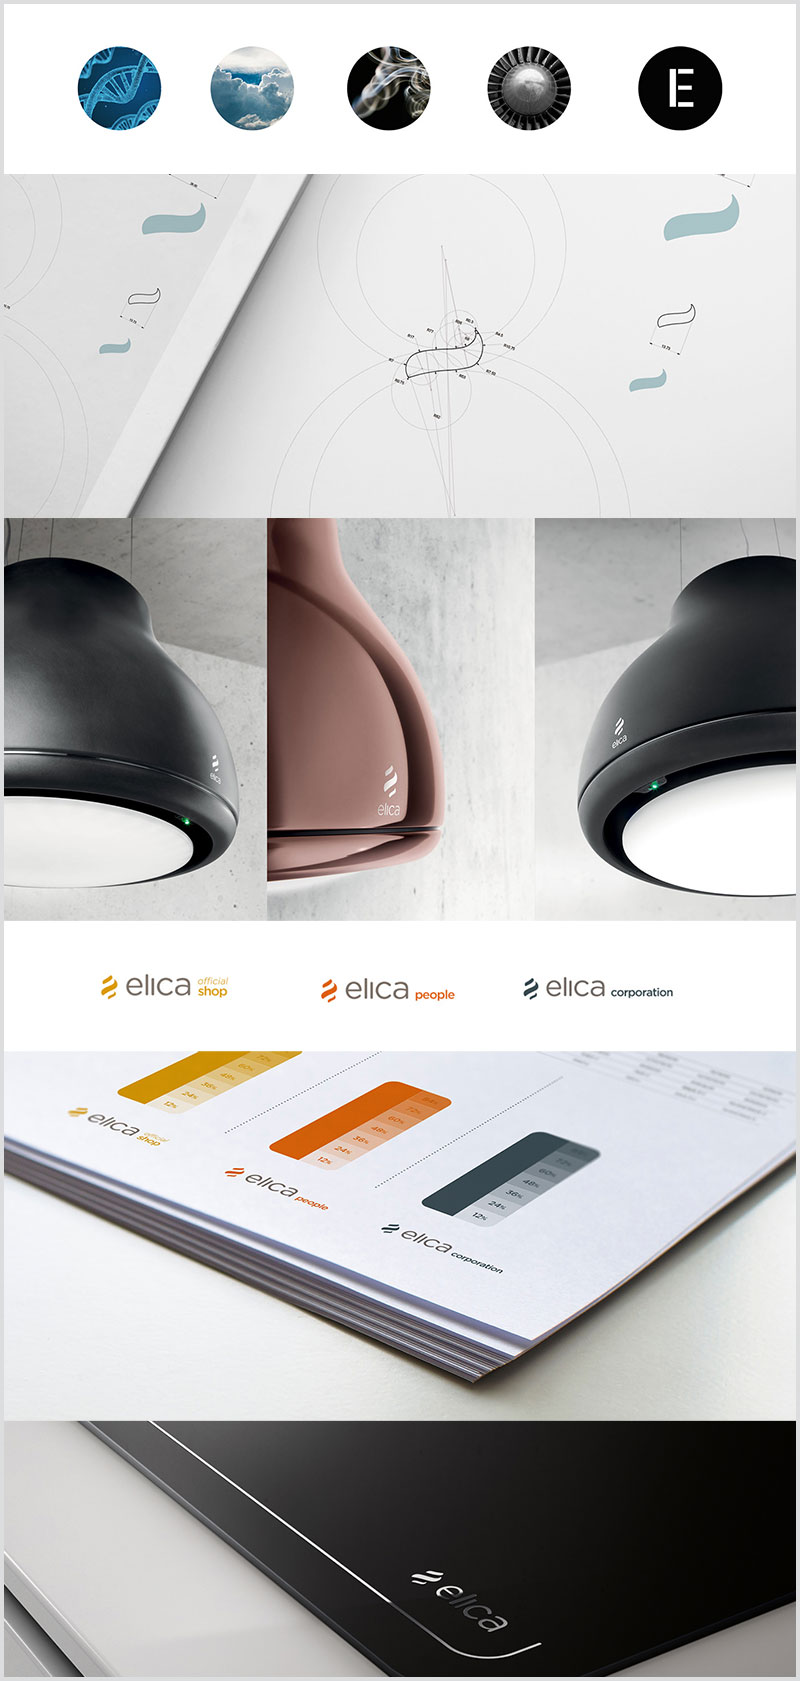 Elica,-Branding-and-Brand-Identity-World-Wide